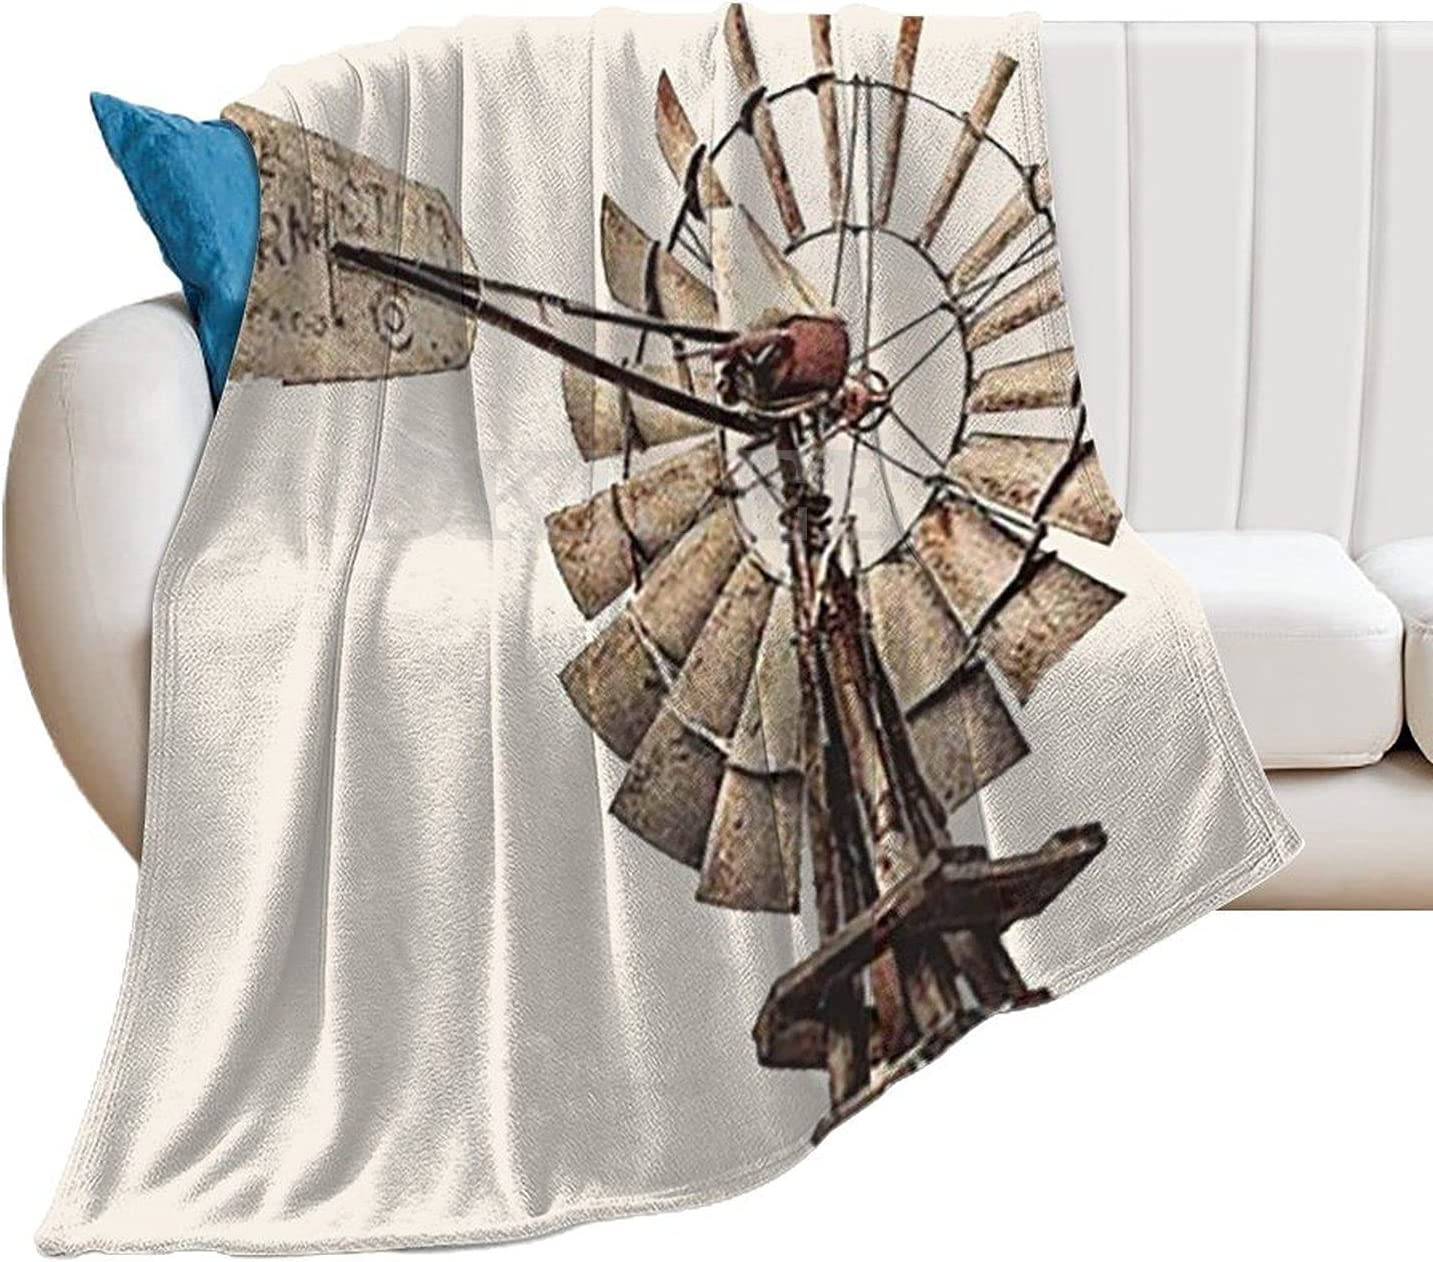 DKISEE Decorative Throw Columbus Mall Blanket Nashville-Davidson Mall for Adults Kids or Farm Rural Ho